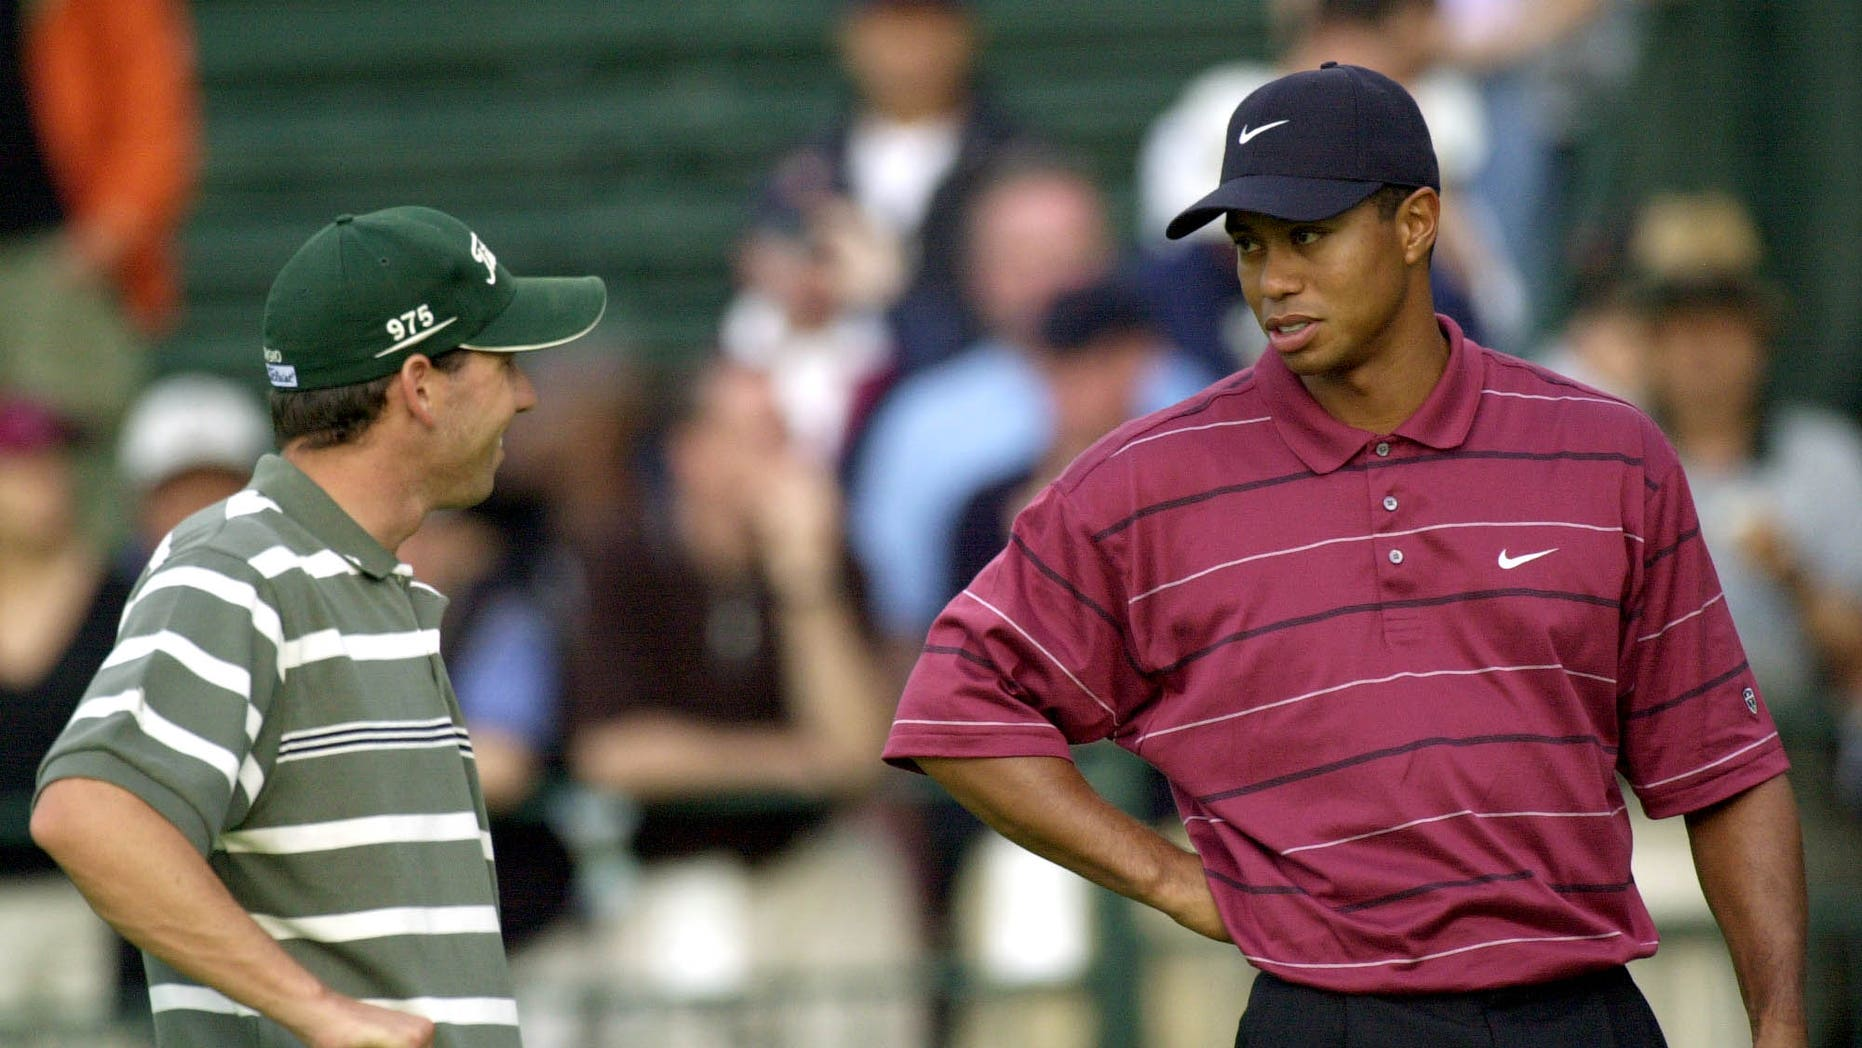 """FILE - In this June 16, 2002 file photo, Sergio Garcia, left, and Tiger Woods talk on the 11th hole while waiting for play to resume after a rain delay during the final round of the U.S. Open Golf Championship in Farmingdale, N.Y.  Garcia was at a European Tour awards dinner Tuesday night, May 21, 2013 when he was jokingly asked if he would have Woods over for dinner during the U.S. Open. The Spaniard replied, """"We'll have him round every night. We will serve fried chicken."""" Woods took to Twitter on Wednesday, May 22, 2013 and said the comment wasn't silly, rather it was wrong and hurtful. (AP Photo/Dave Martin, File)"""